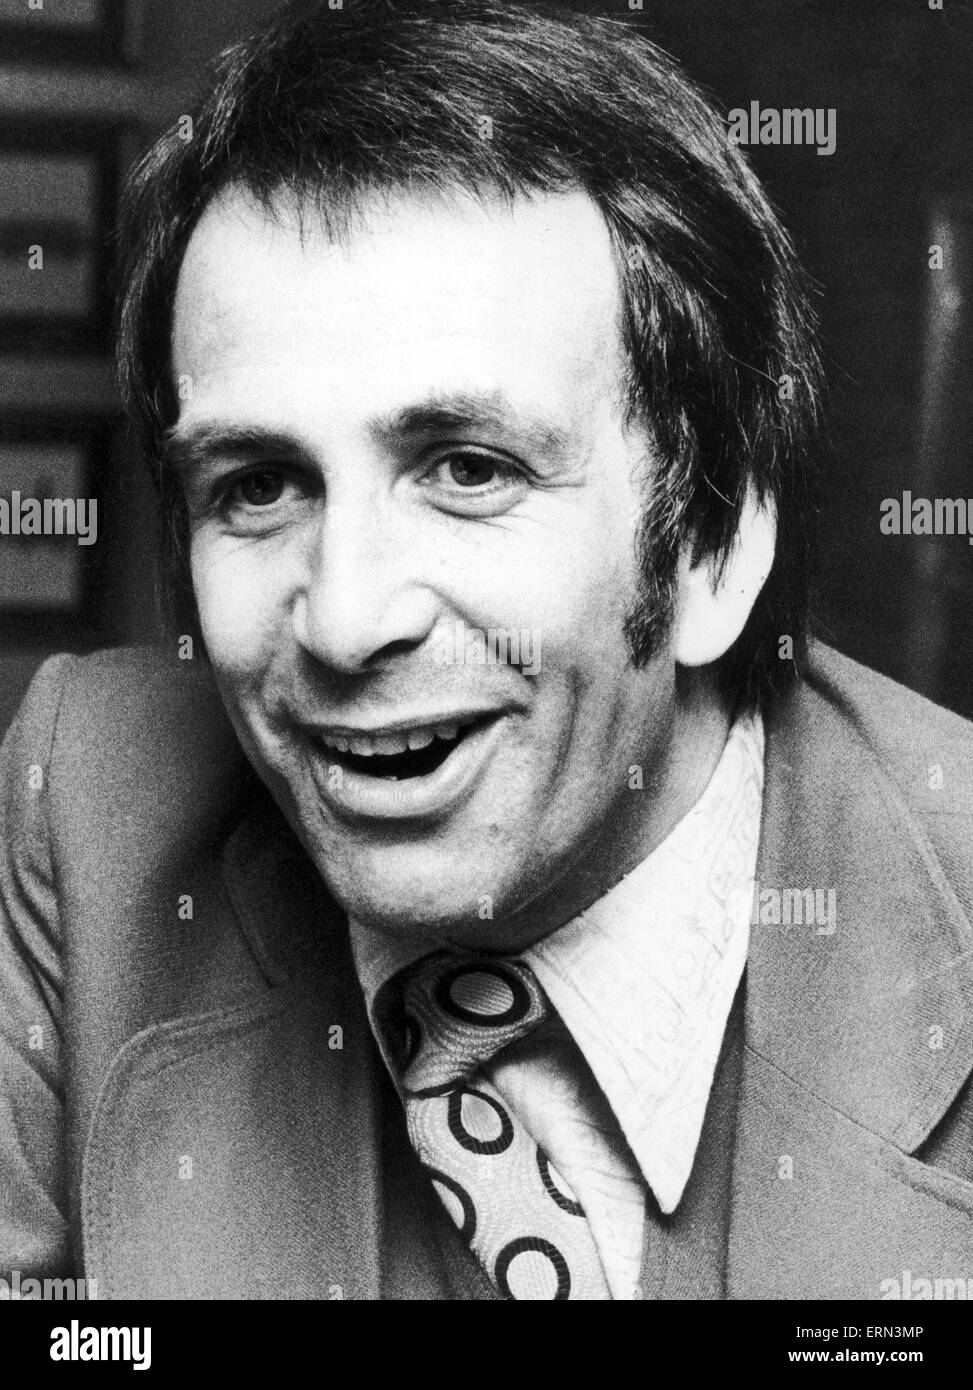 Don Maclean, actor and comedian, 18th May 1973. - Stock Image